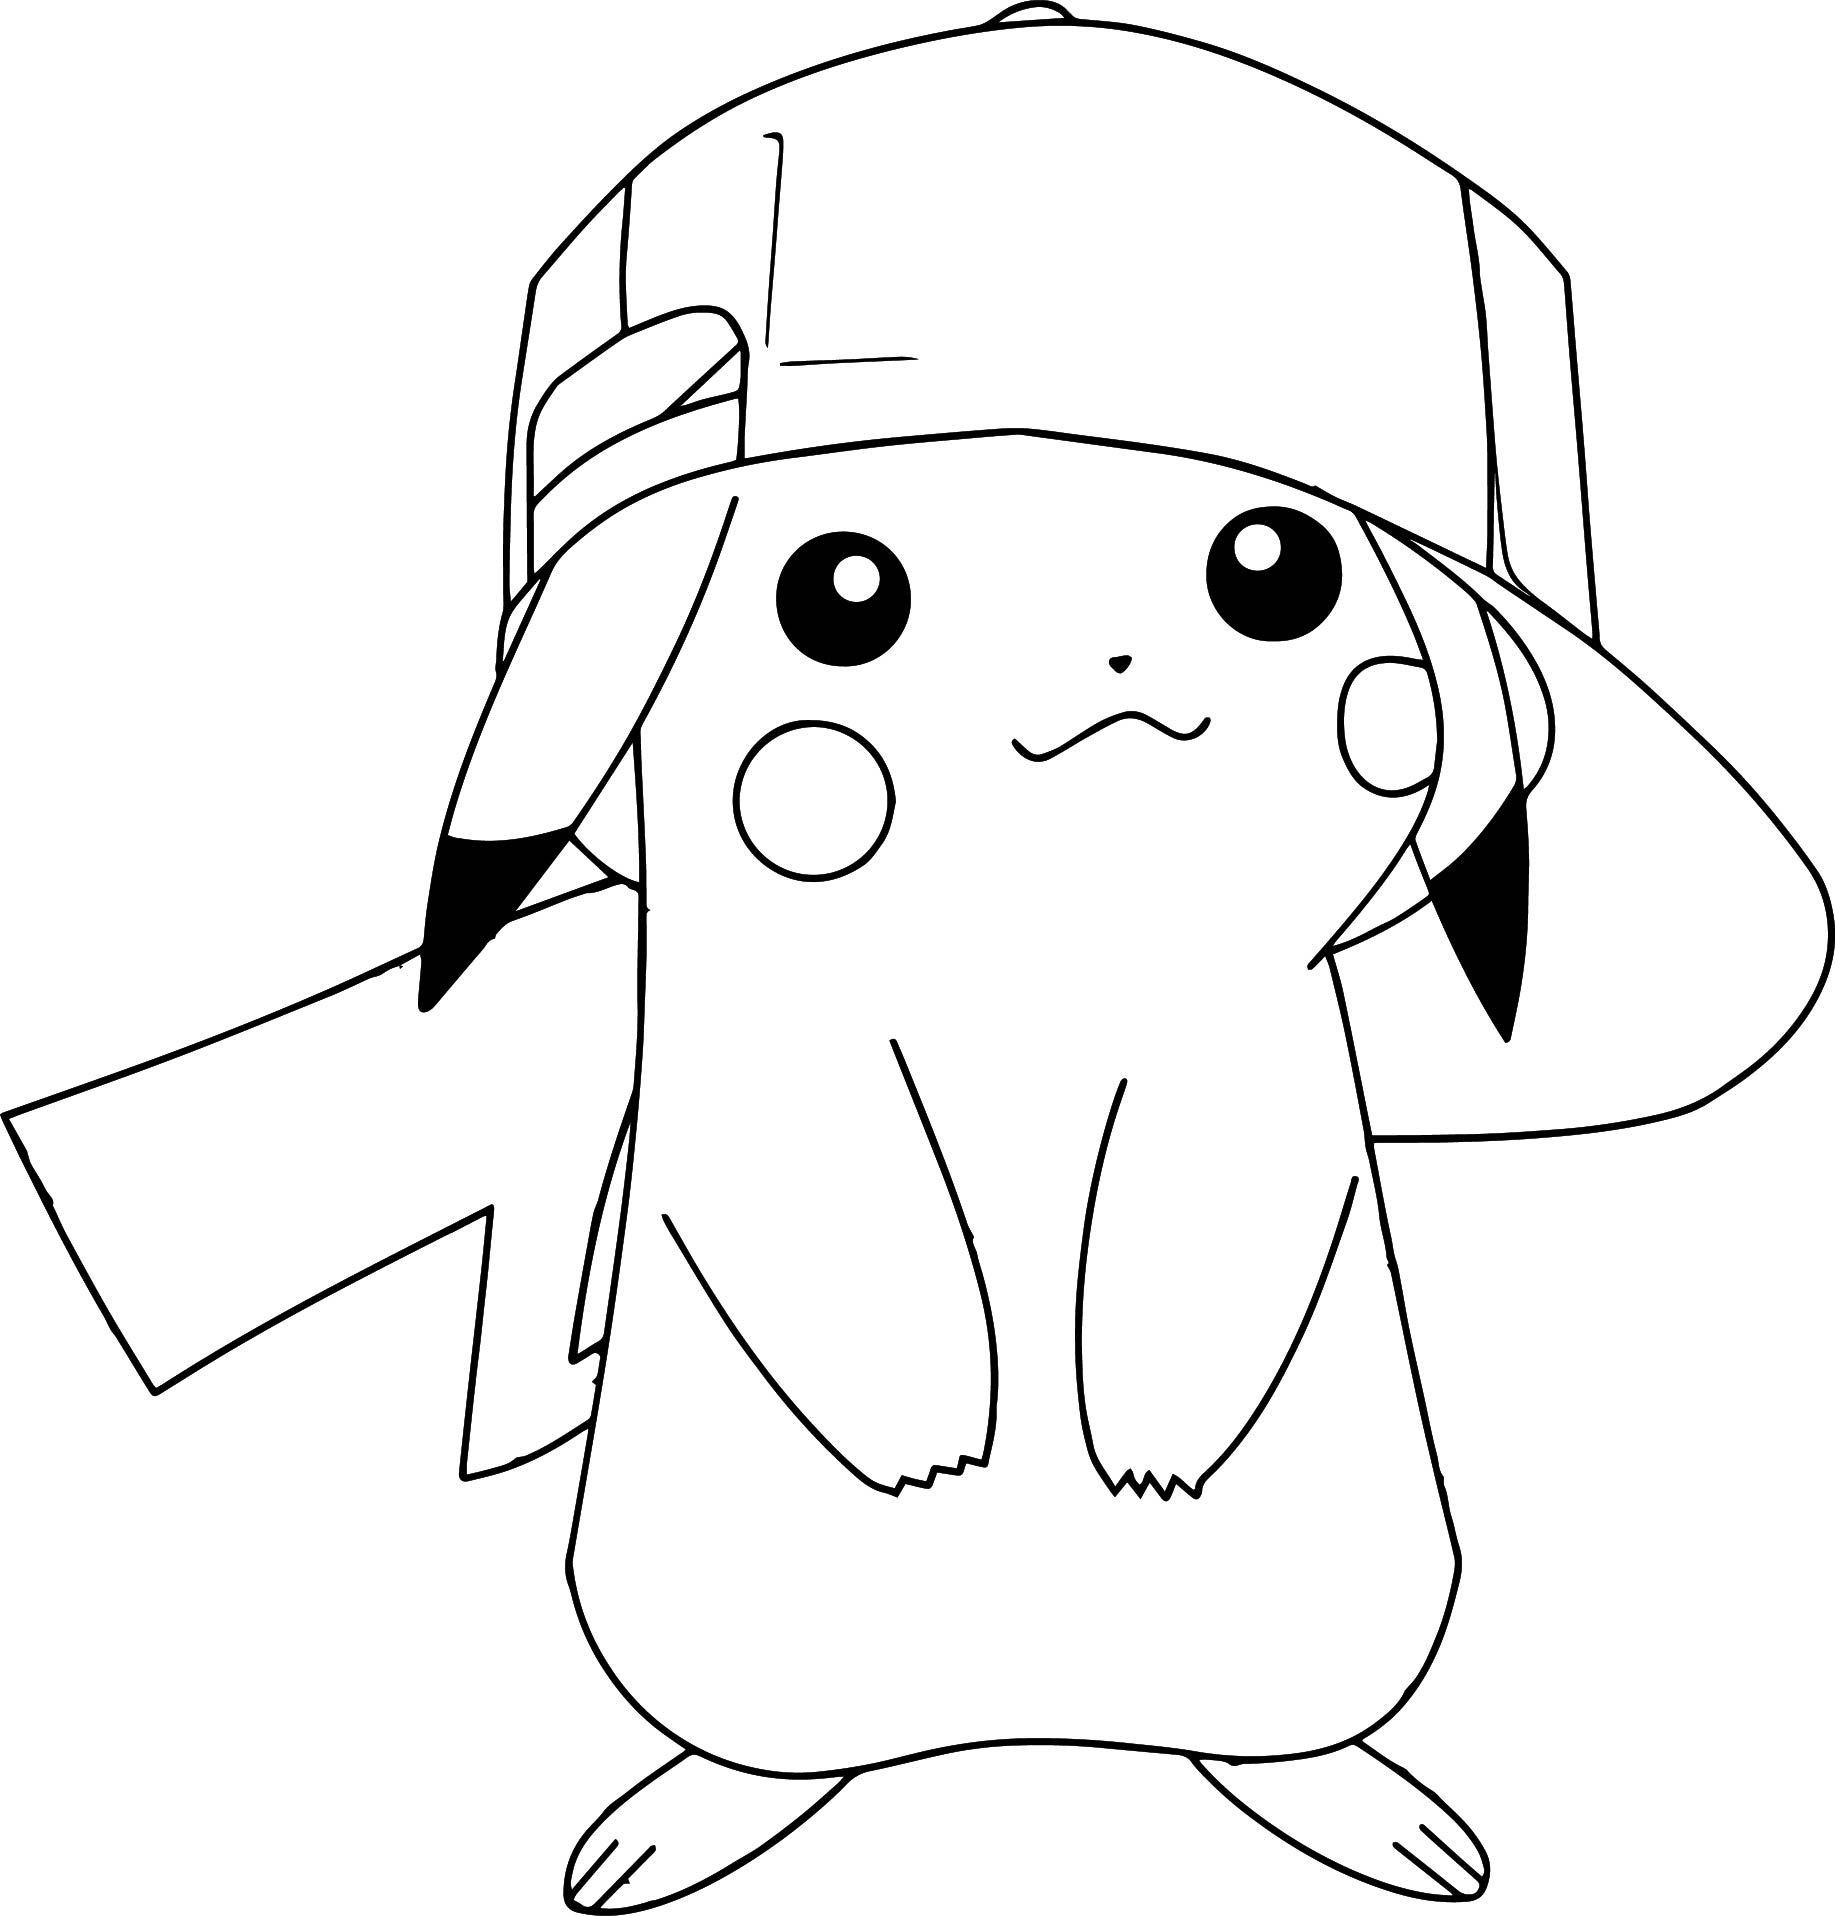 Mega Pikachu Coloring Page Through The Thousand Images On The Net About Mega Pikachu Colo Pikachu Coloring Page Cartoon Coloring Pages Pokemon Coloring Pages